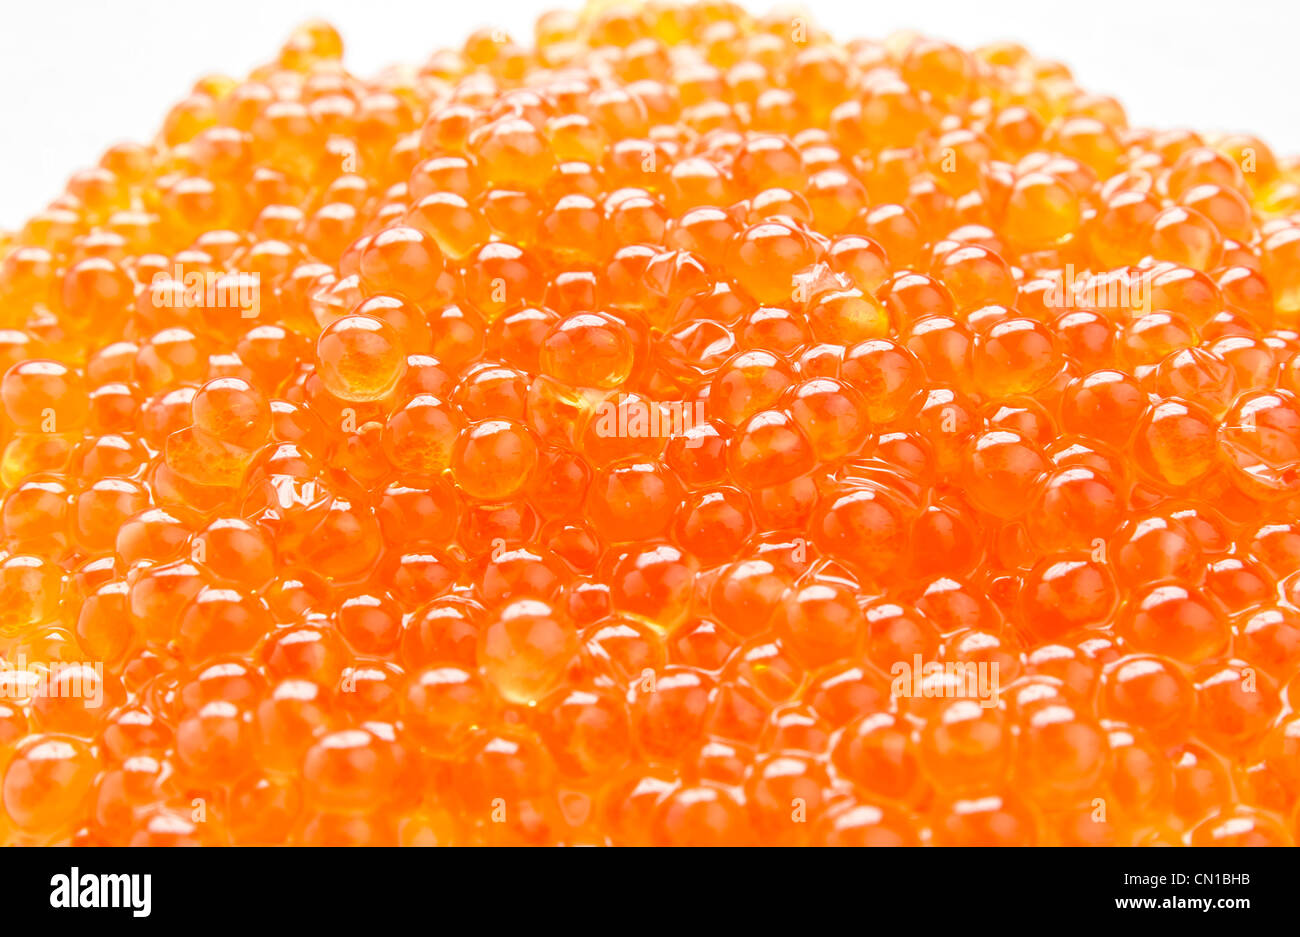 Red salmon caviar isolated on a white background - Stock Image